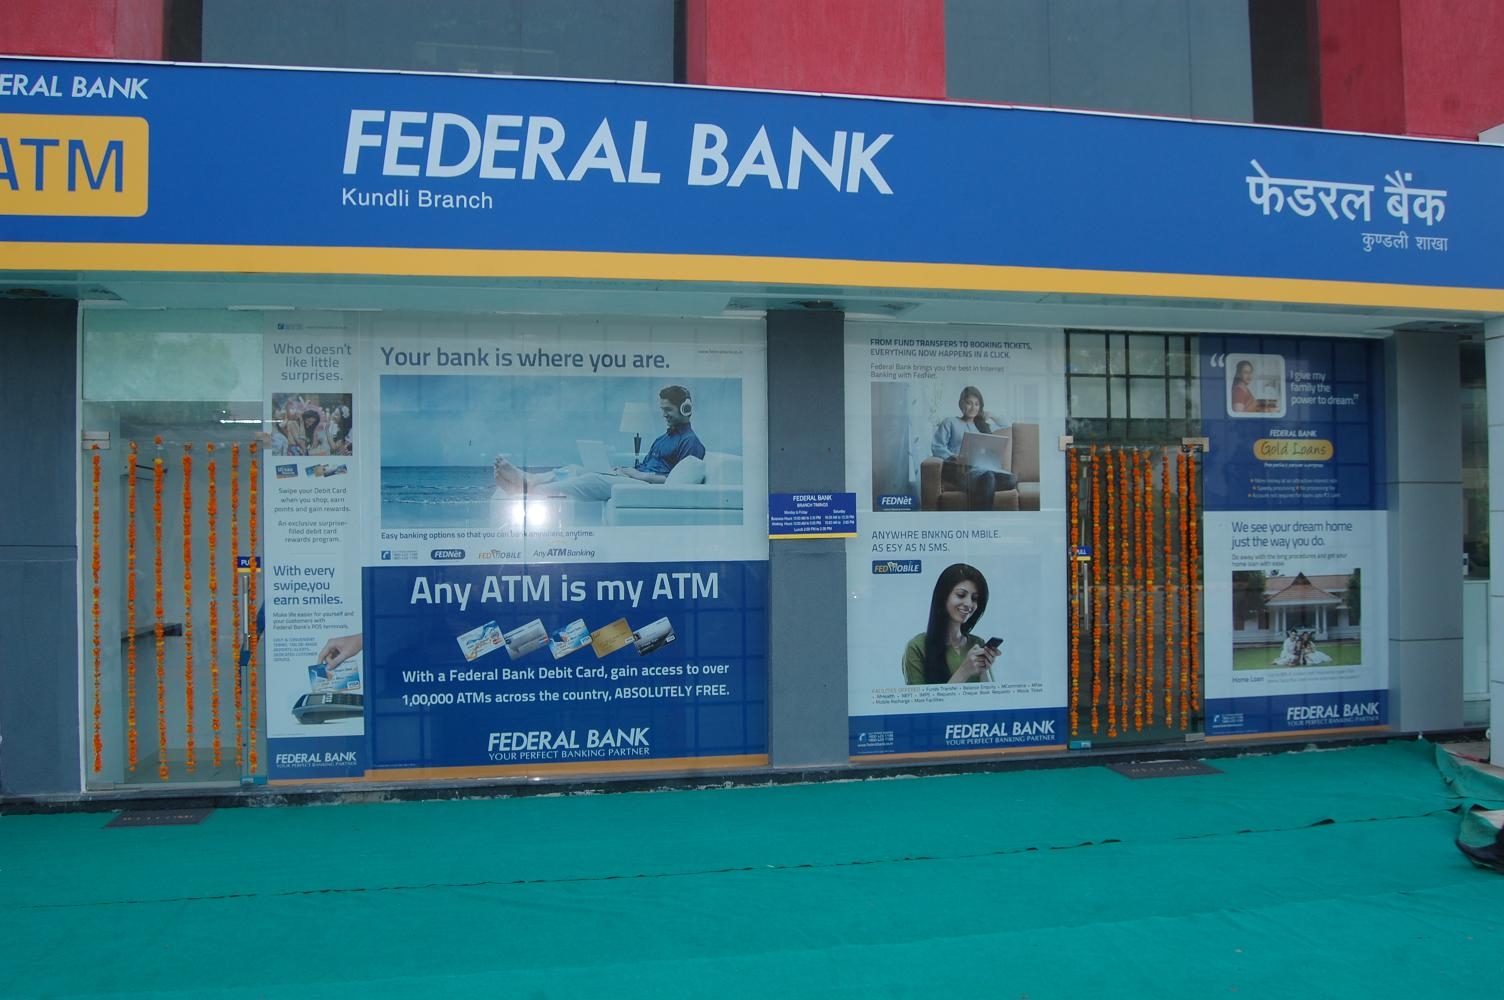 Searching For FEDERAL BANK RECRUITMENT 2020? PO & क्लर्क पद भर्ती